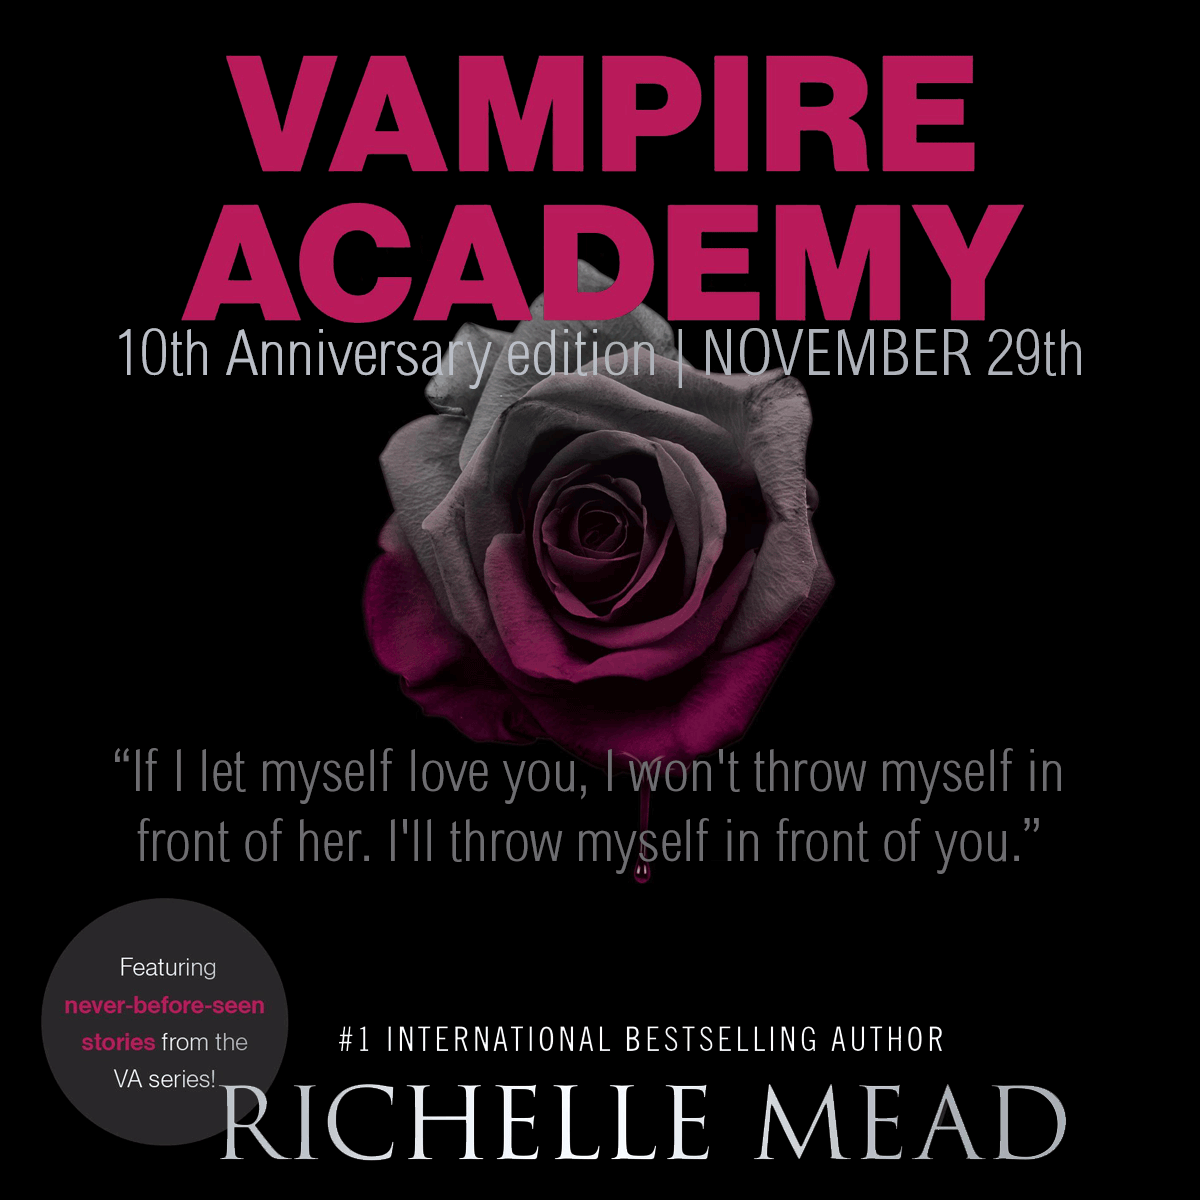 Book of the Week - Vampire Academy by Richelle Mead